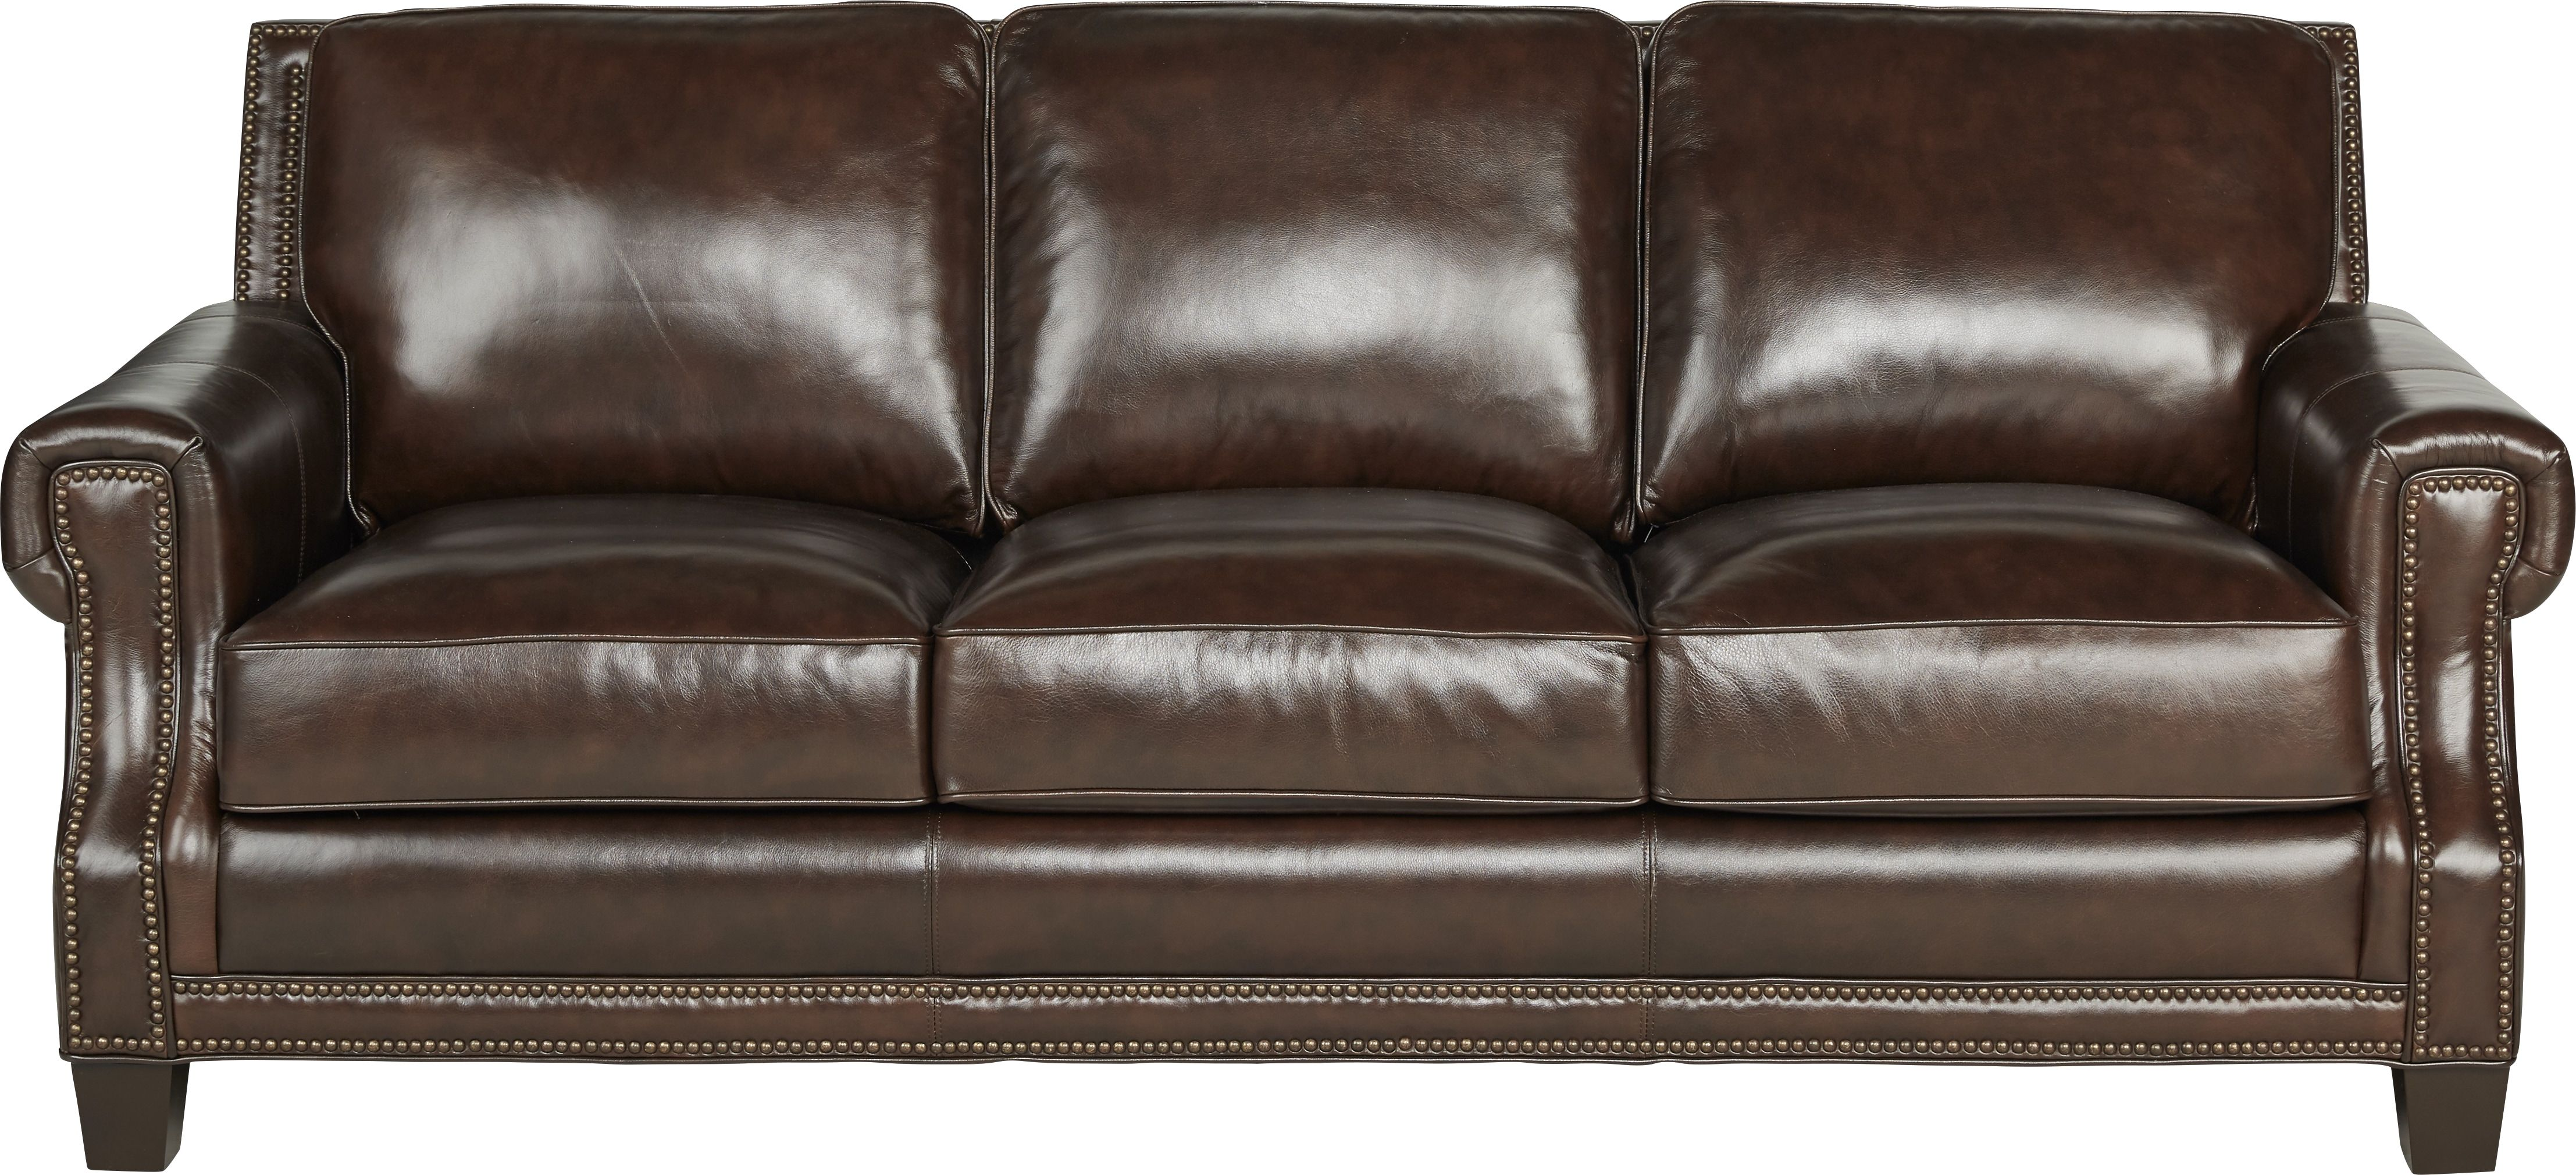 Vicenza Chocolate Leather Sofa in 2019 | Sofas | Leather ...